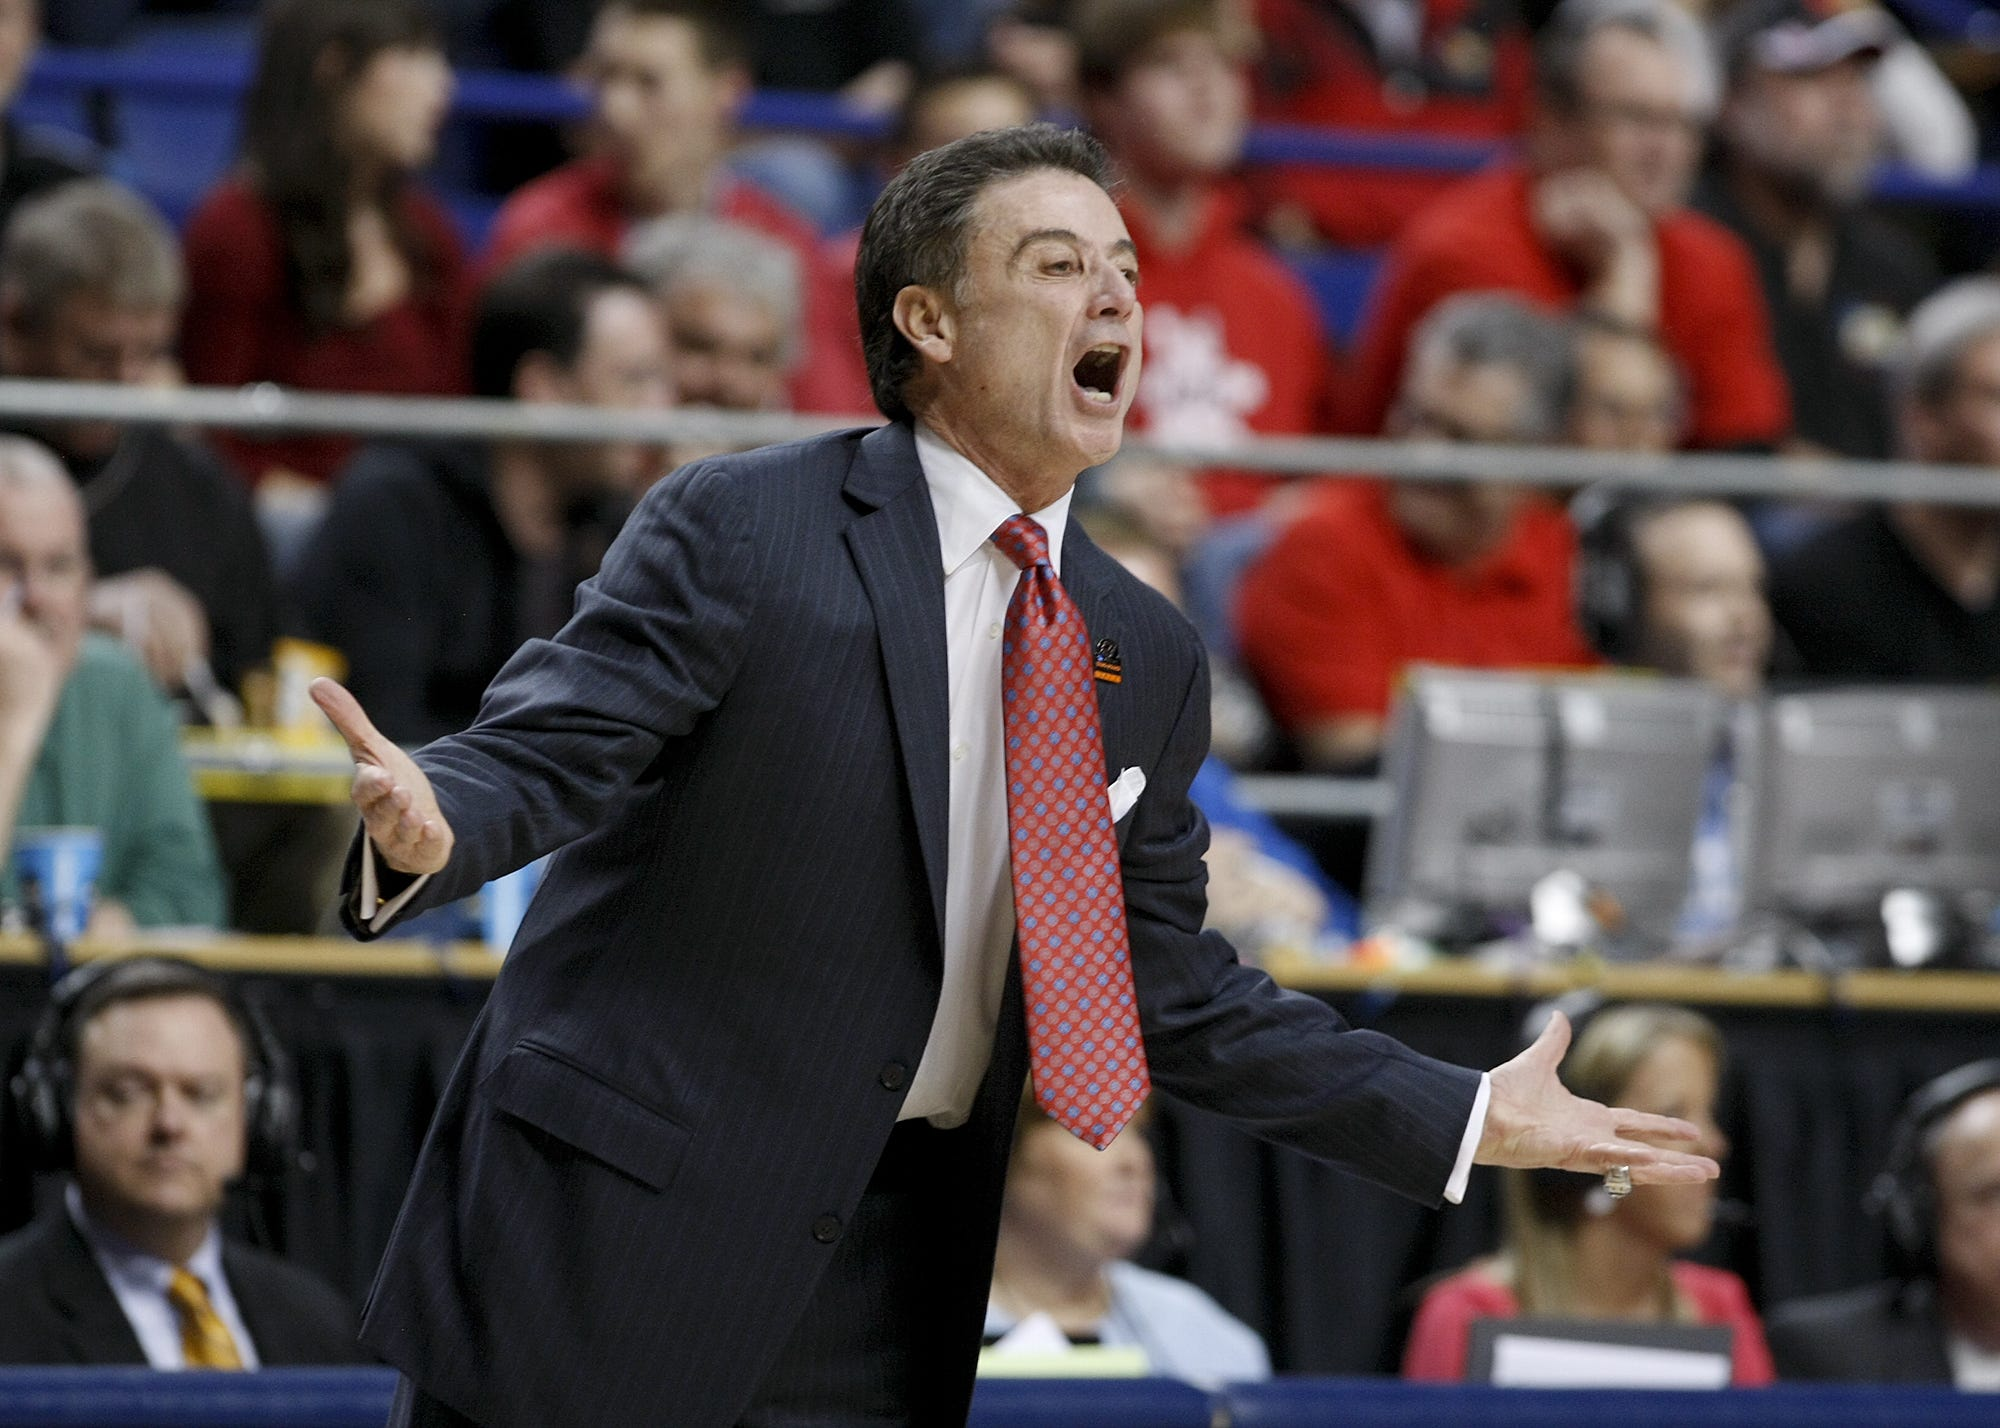 Live stream: Former Louisville coach Rick Pitino discusses his career and legacy